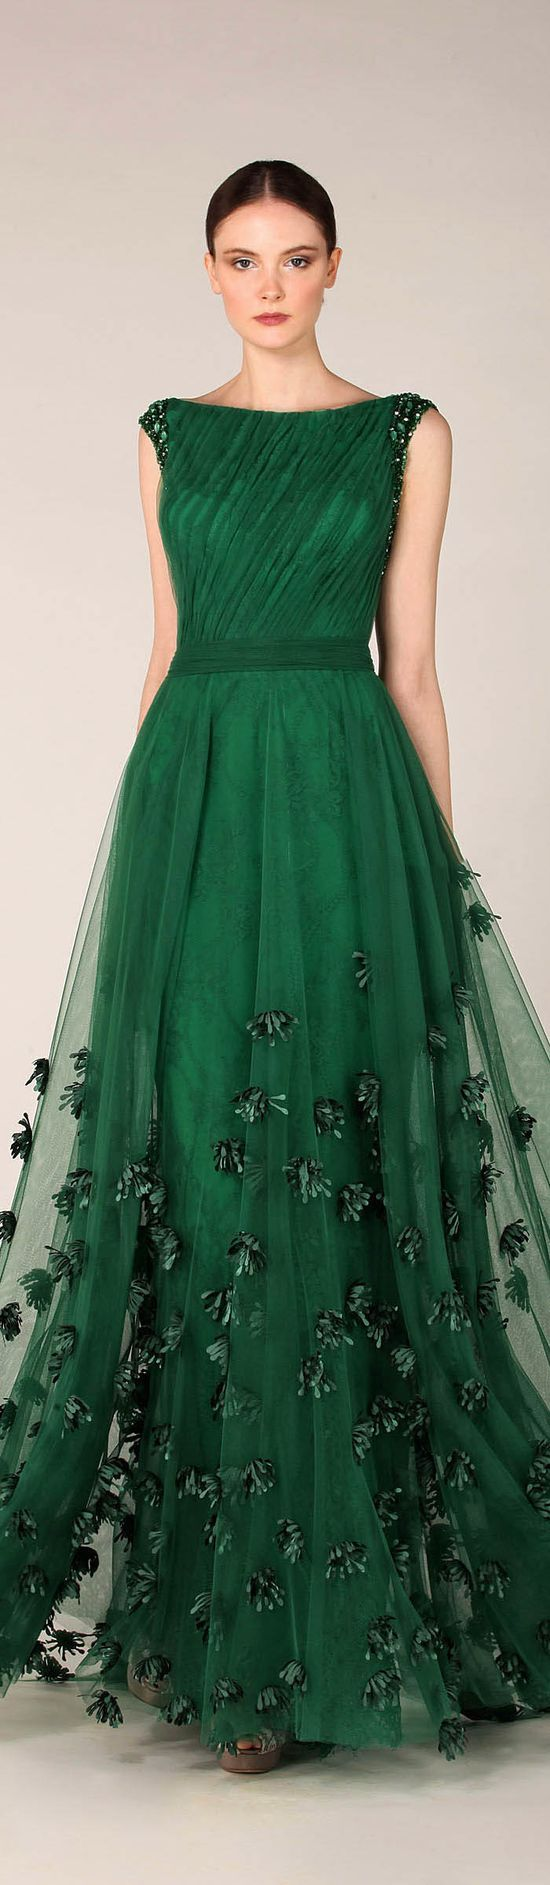 Get inspired: Brides, fancy a beautiful forest green wedding gown? This one looks lovely!